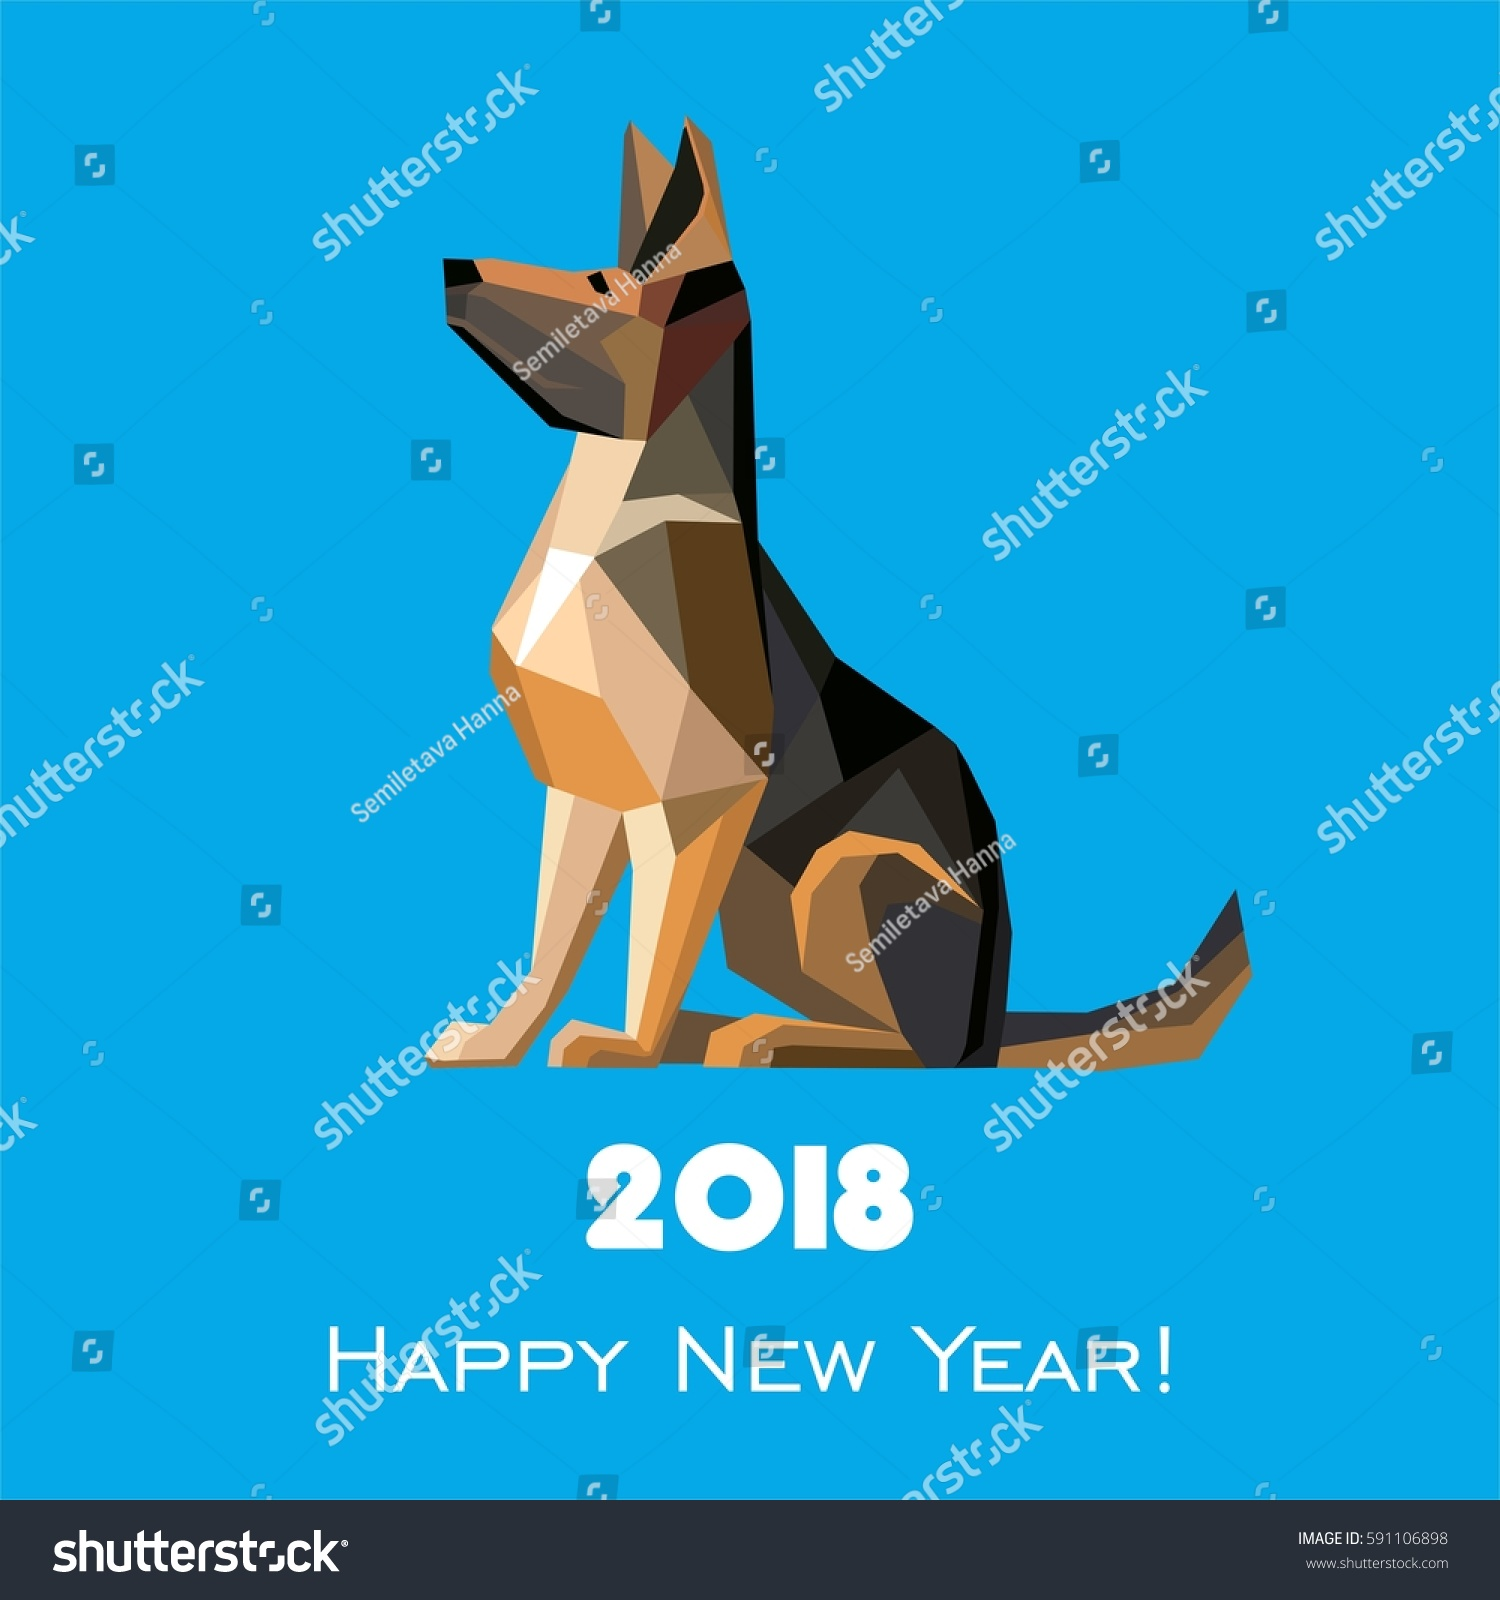 2018 Happy New Year Greeting Card Stock Illustration 591106898